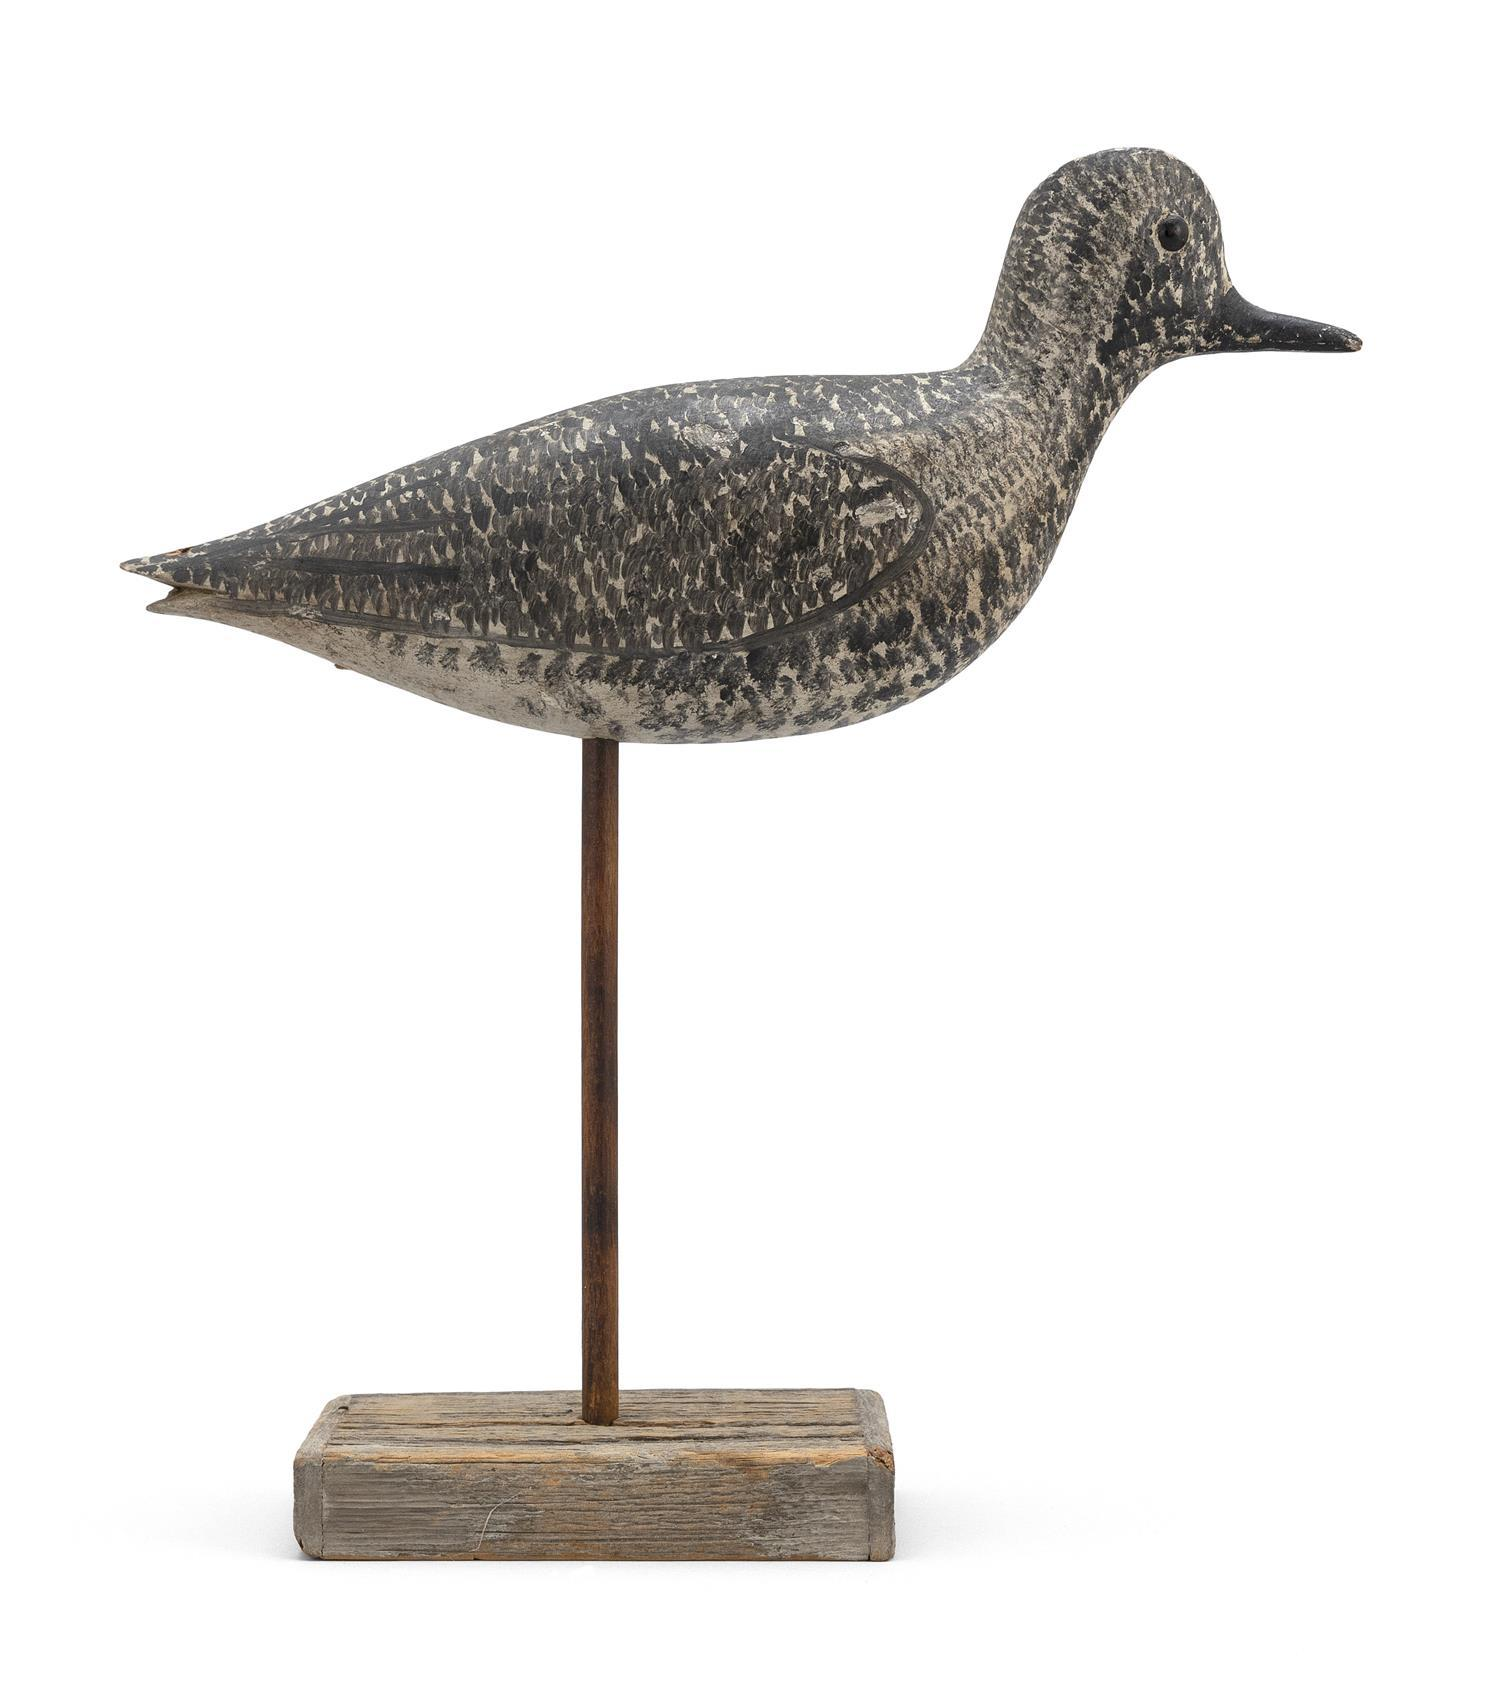 "GEORGE BOYD BLACK-BELLIED PLOVER DECOY Early 20th Century. Black glass eyes. Retains superb original paint. Length 10.5"". From the M..."